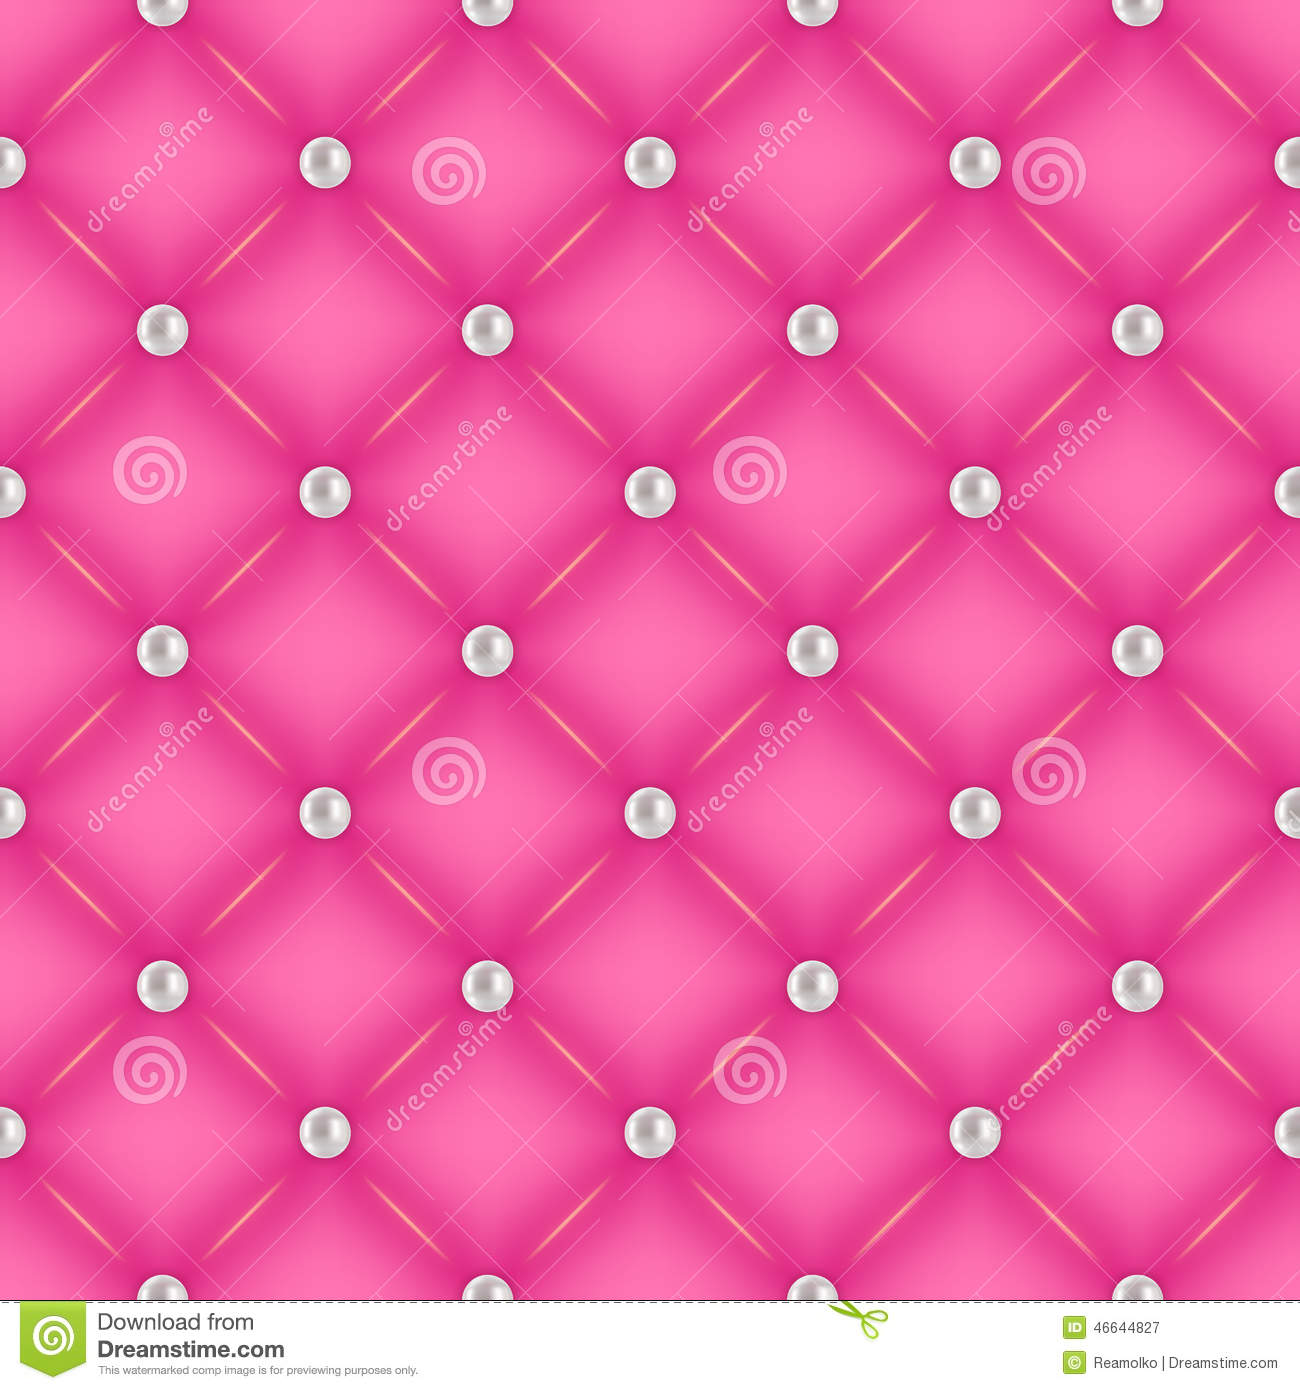 Stock Illustration Seamless Pink Quilted Background Pearl Pins Glam Silk Round Image46644827 on Modern Glamour Interior Design